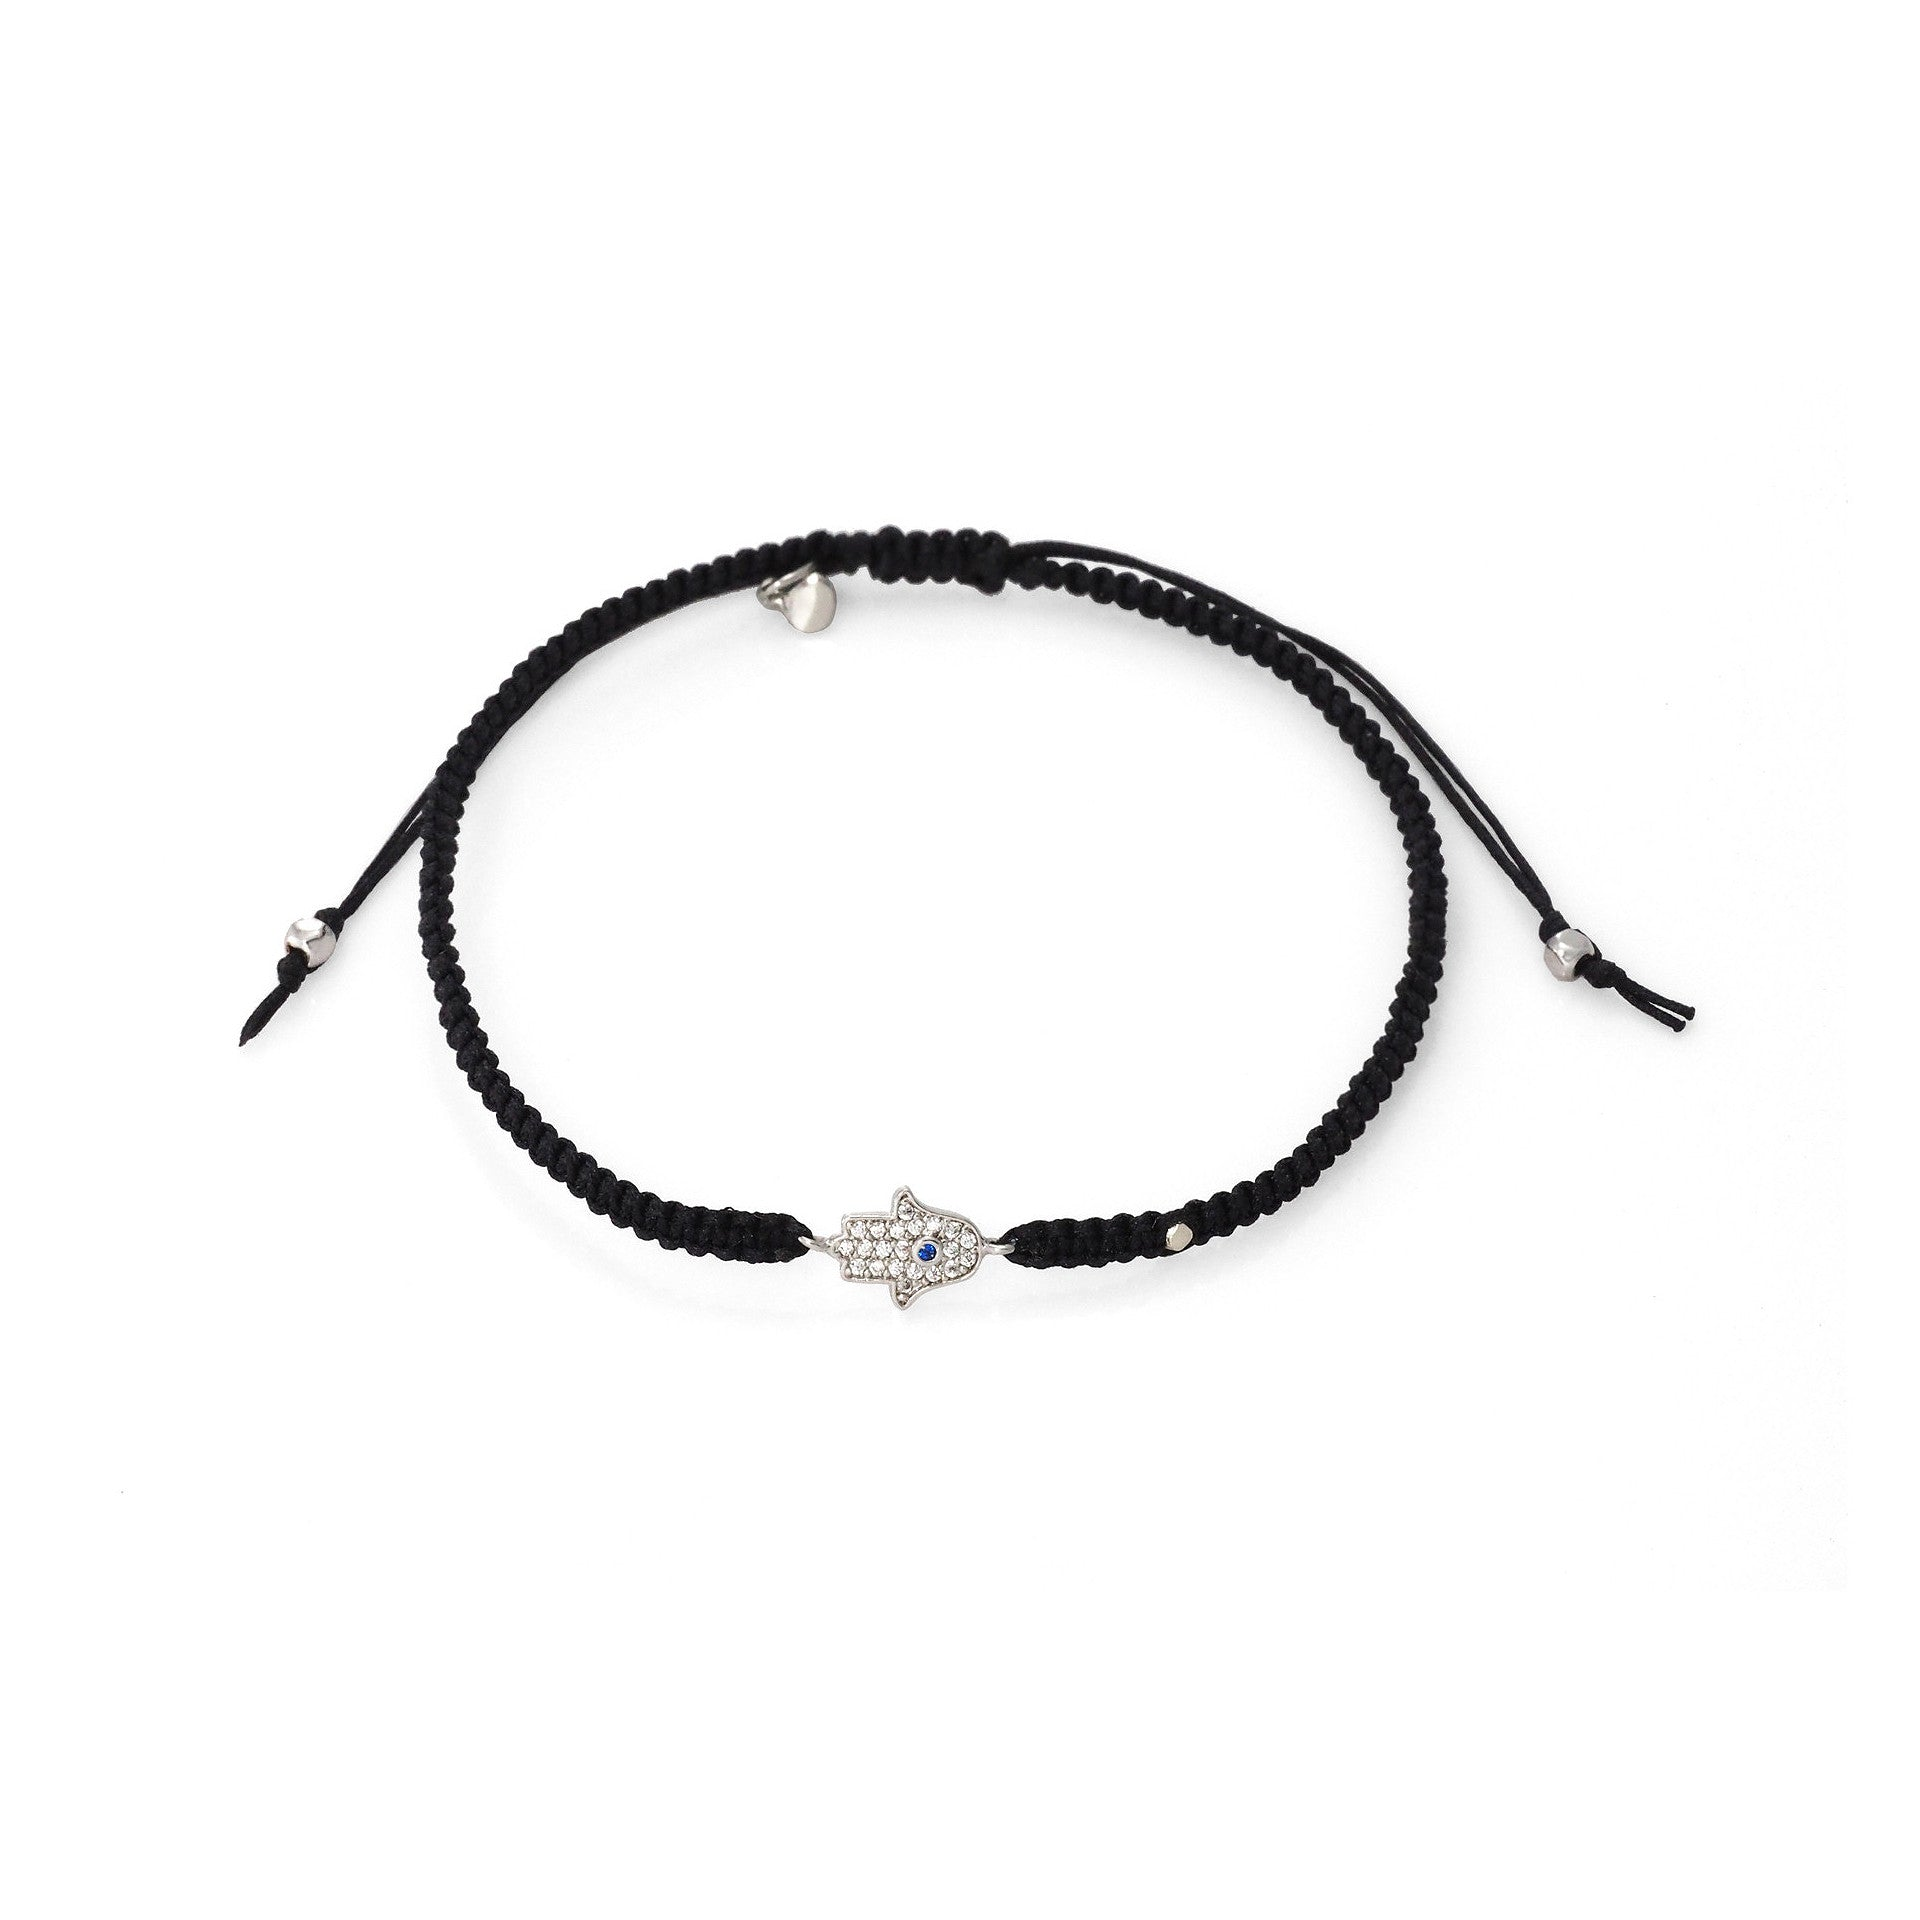 BRAIDED SILK CORD BRACELET WITH MINI HAMSA